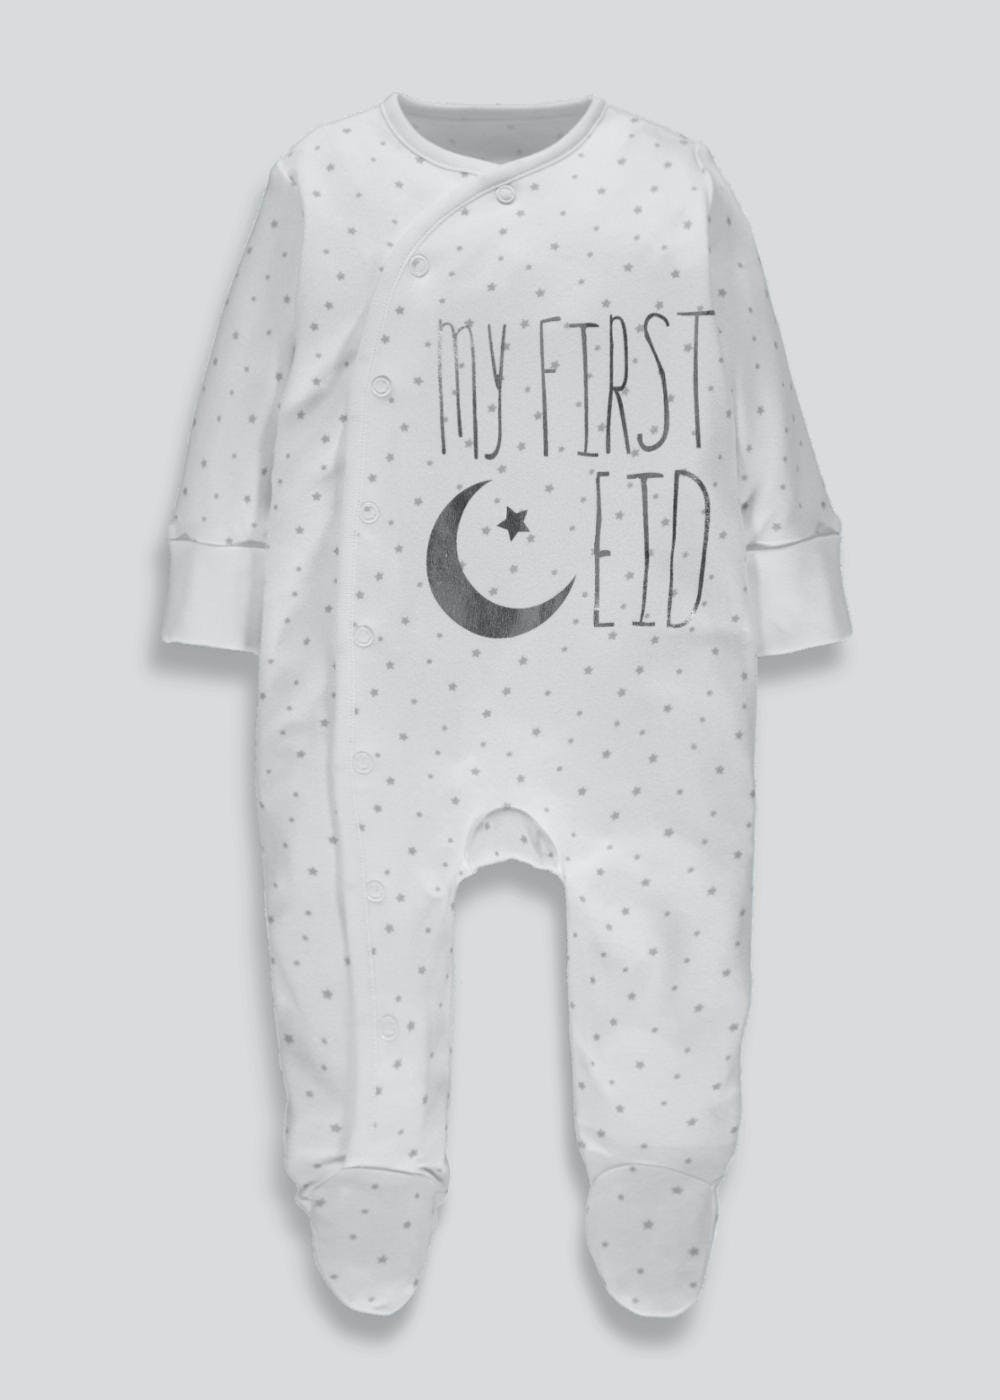 9d4677dcf Unisex My First Eid Sleepsuit (Tiny Baby-18mths) – White – Matalan